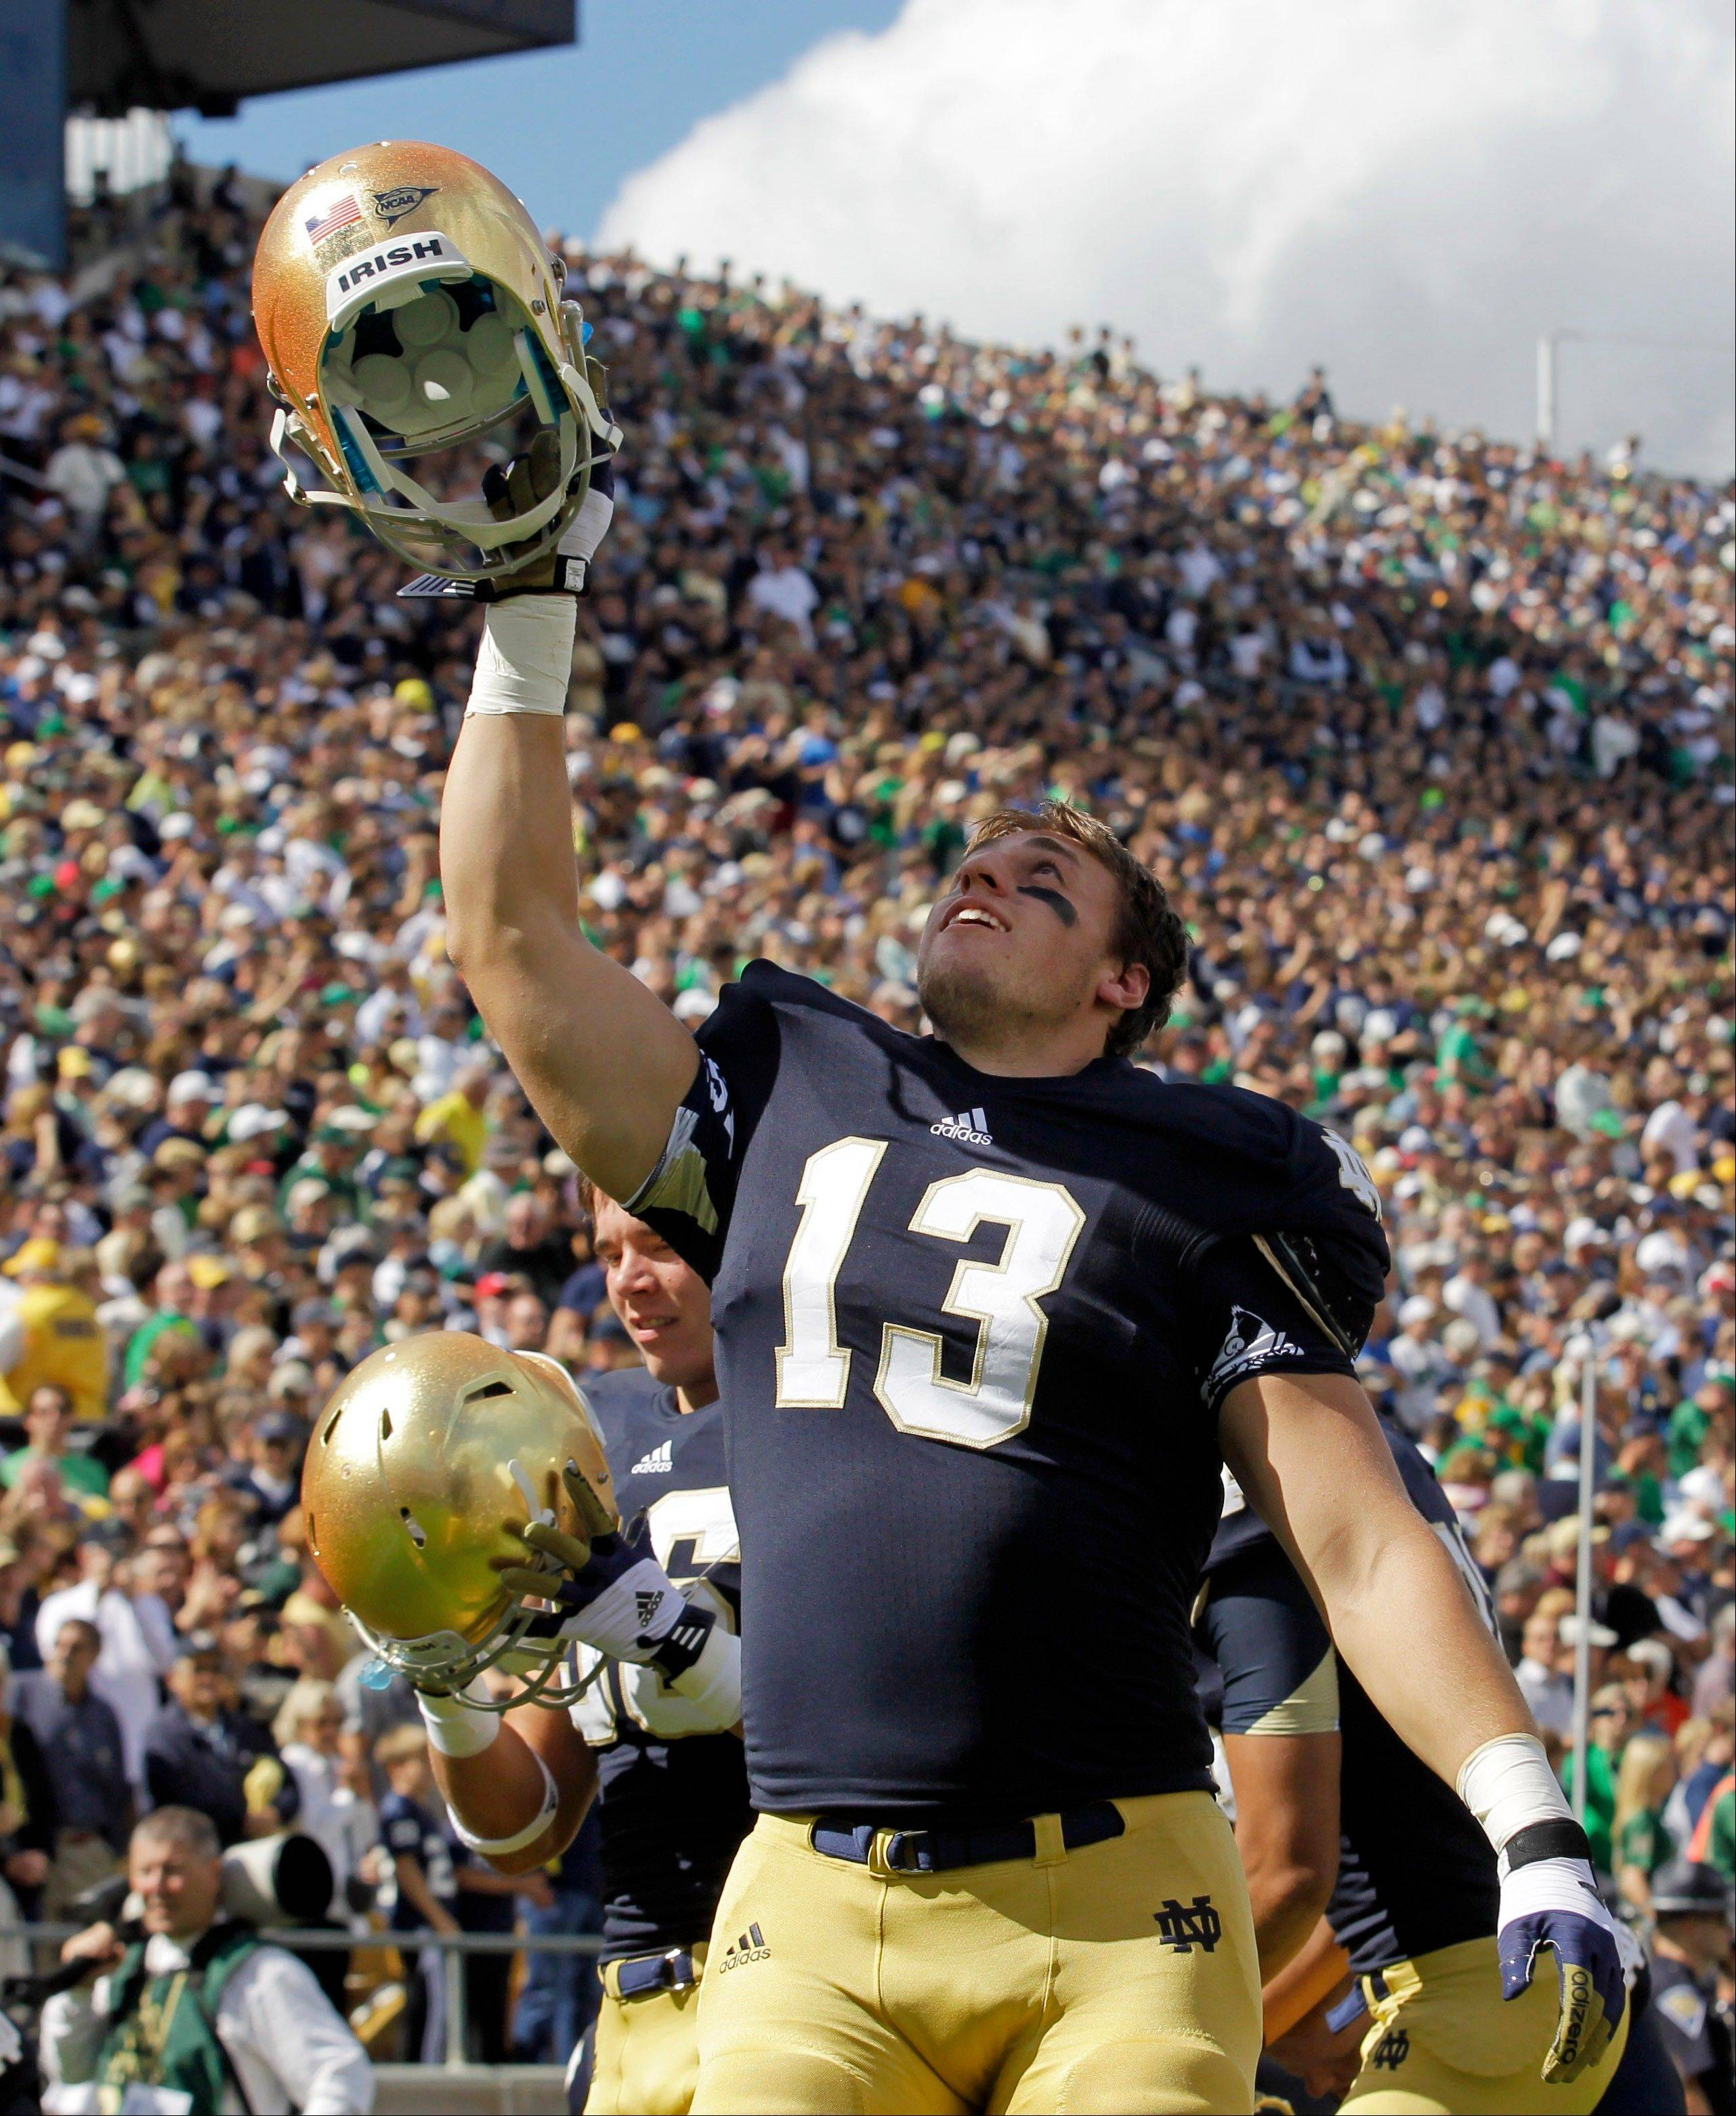 Notre Dame's Spond thriving after debilitating migraine